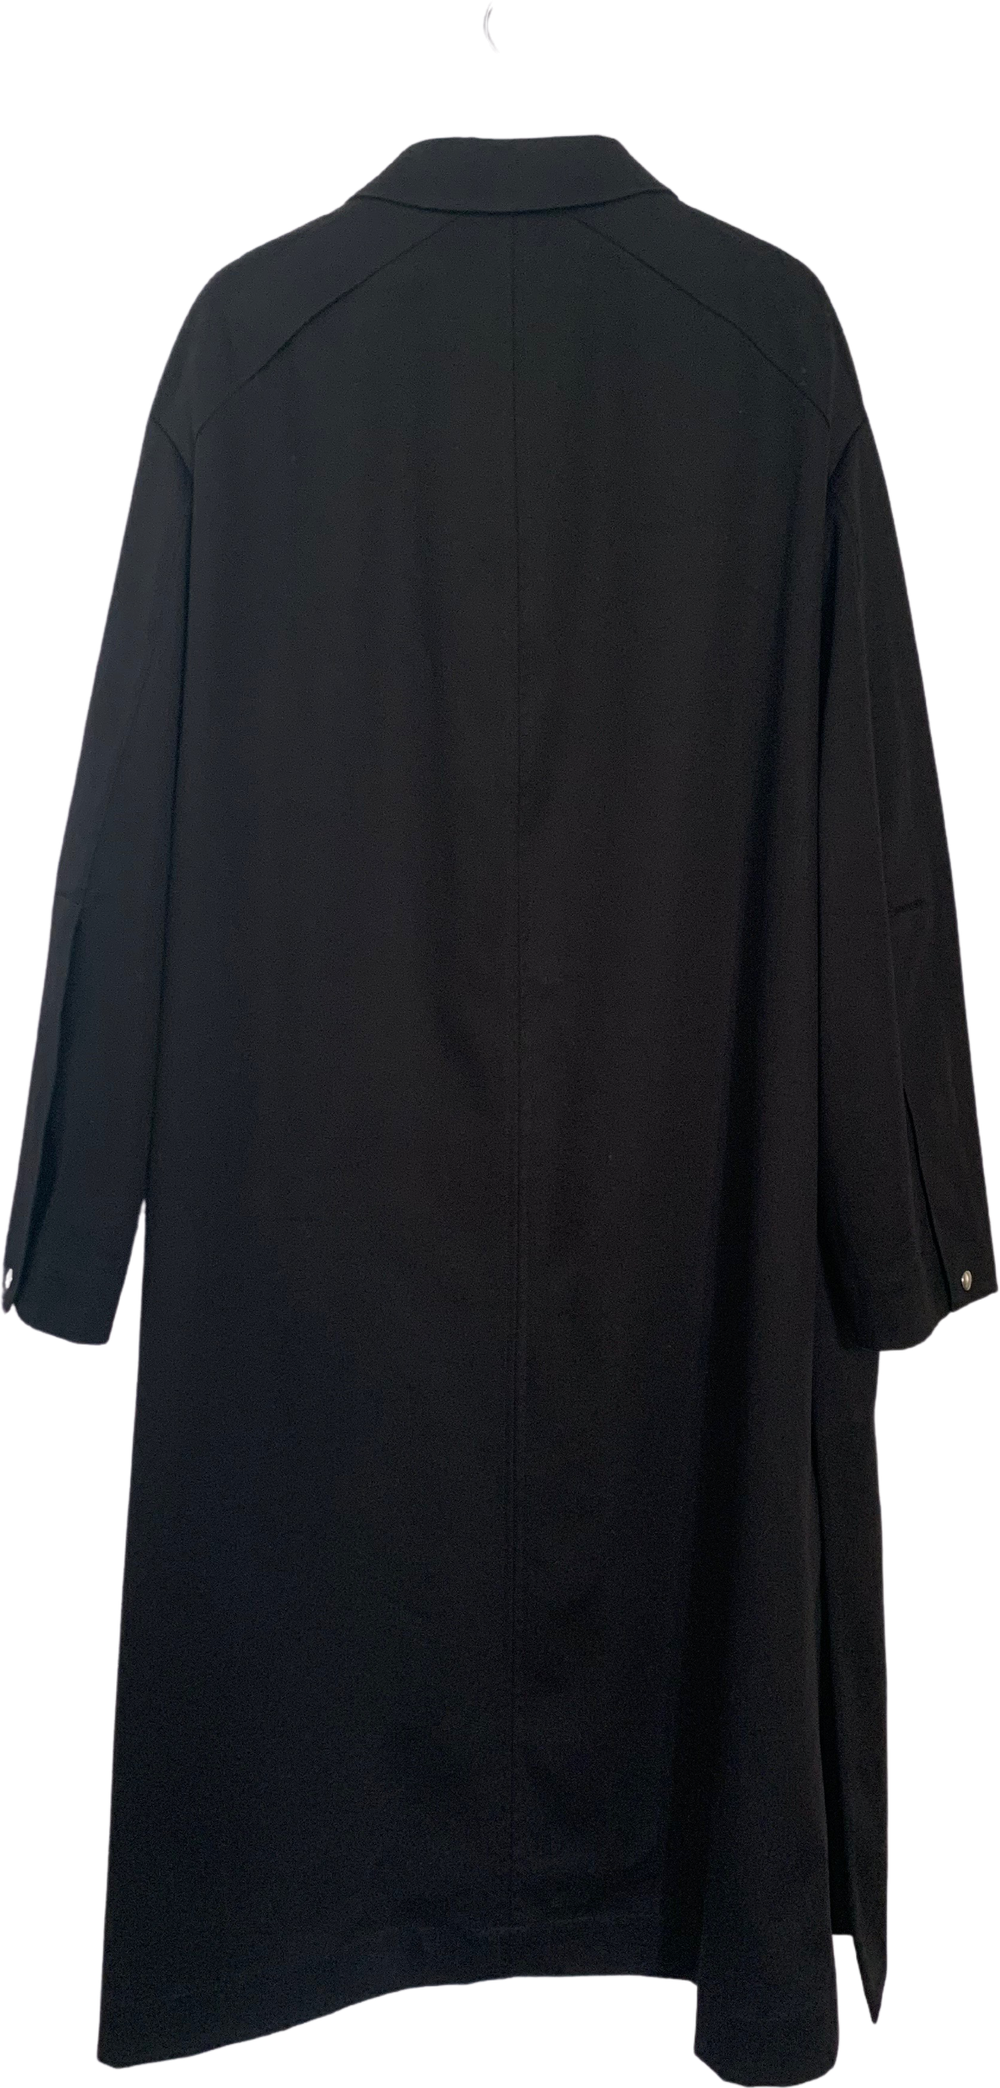 Black Cotton Mix Oamc Trench Coat Slit Panel Elongated Size M/L